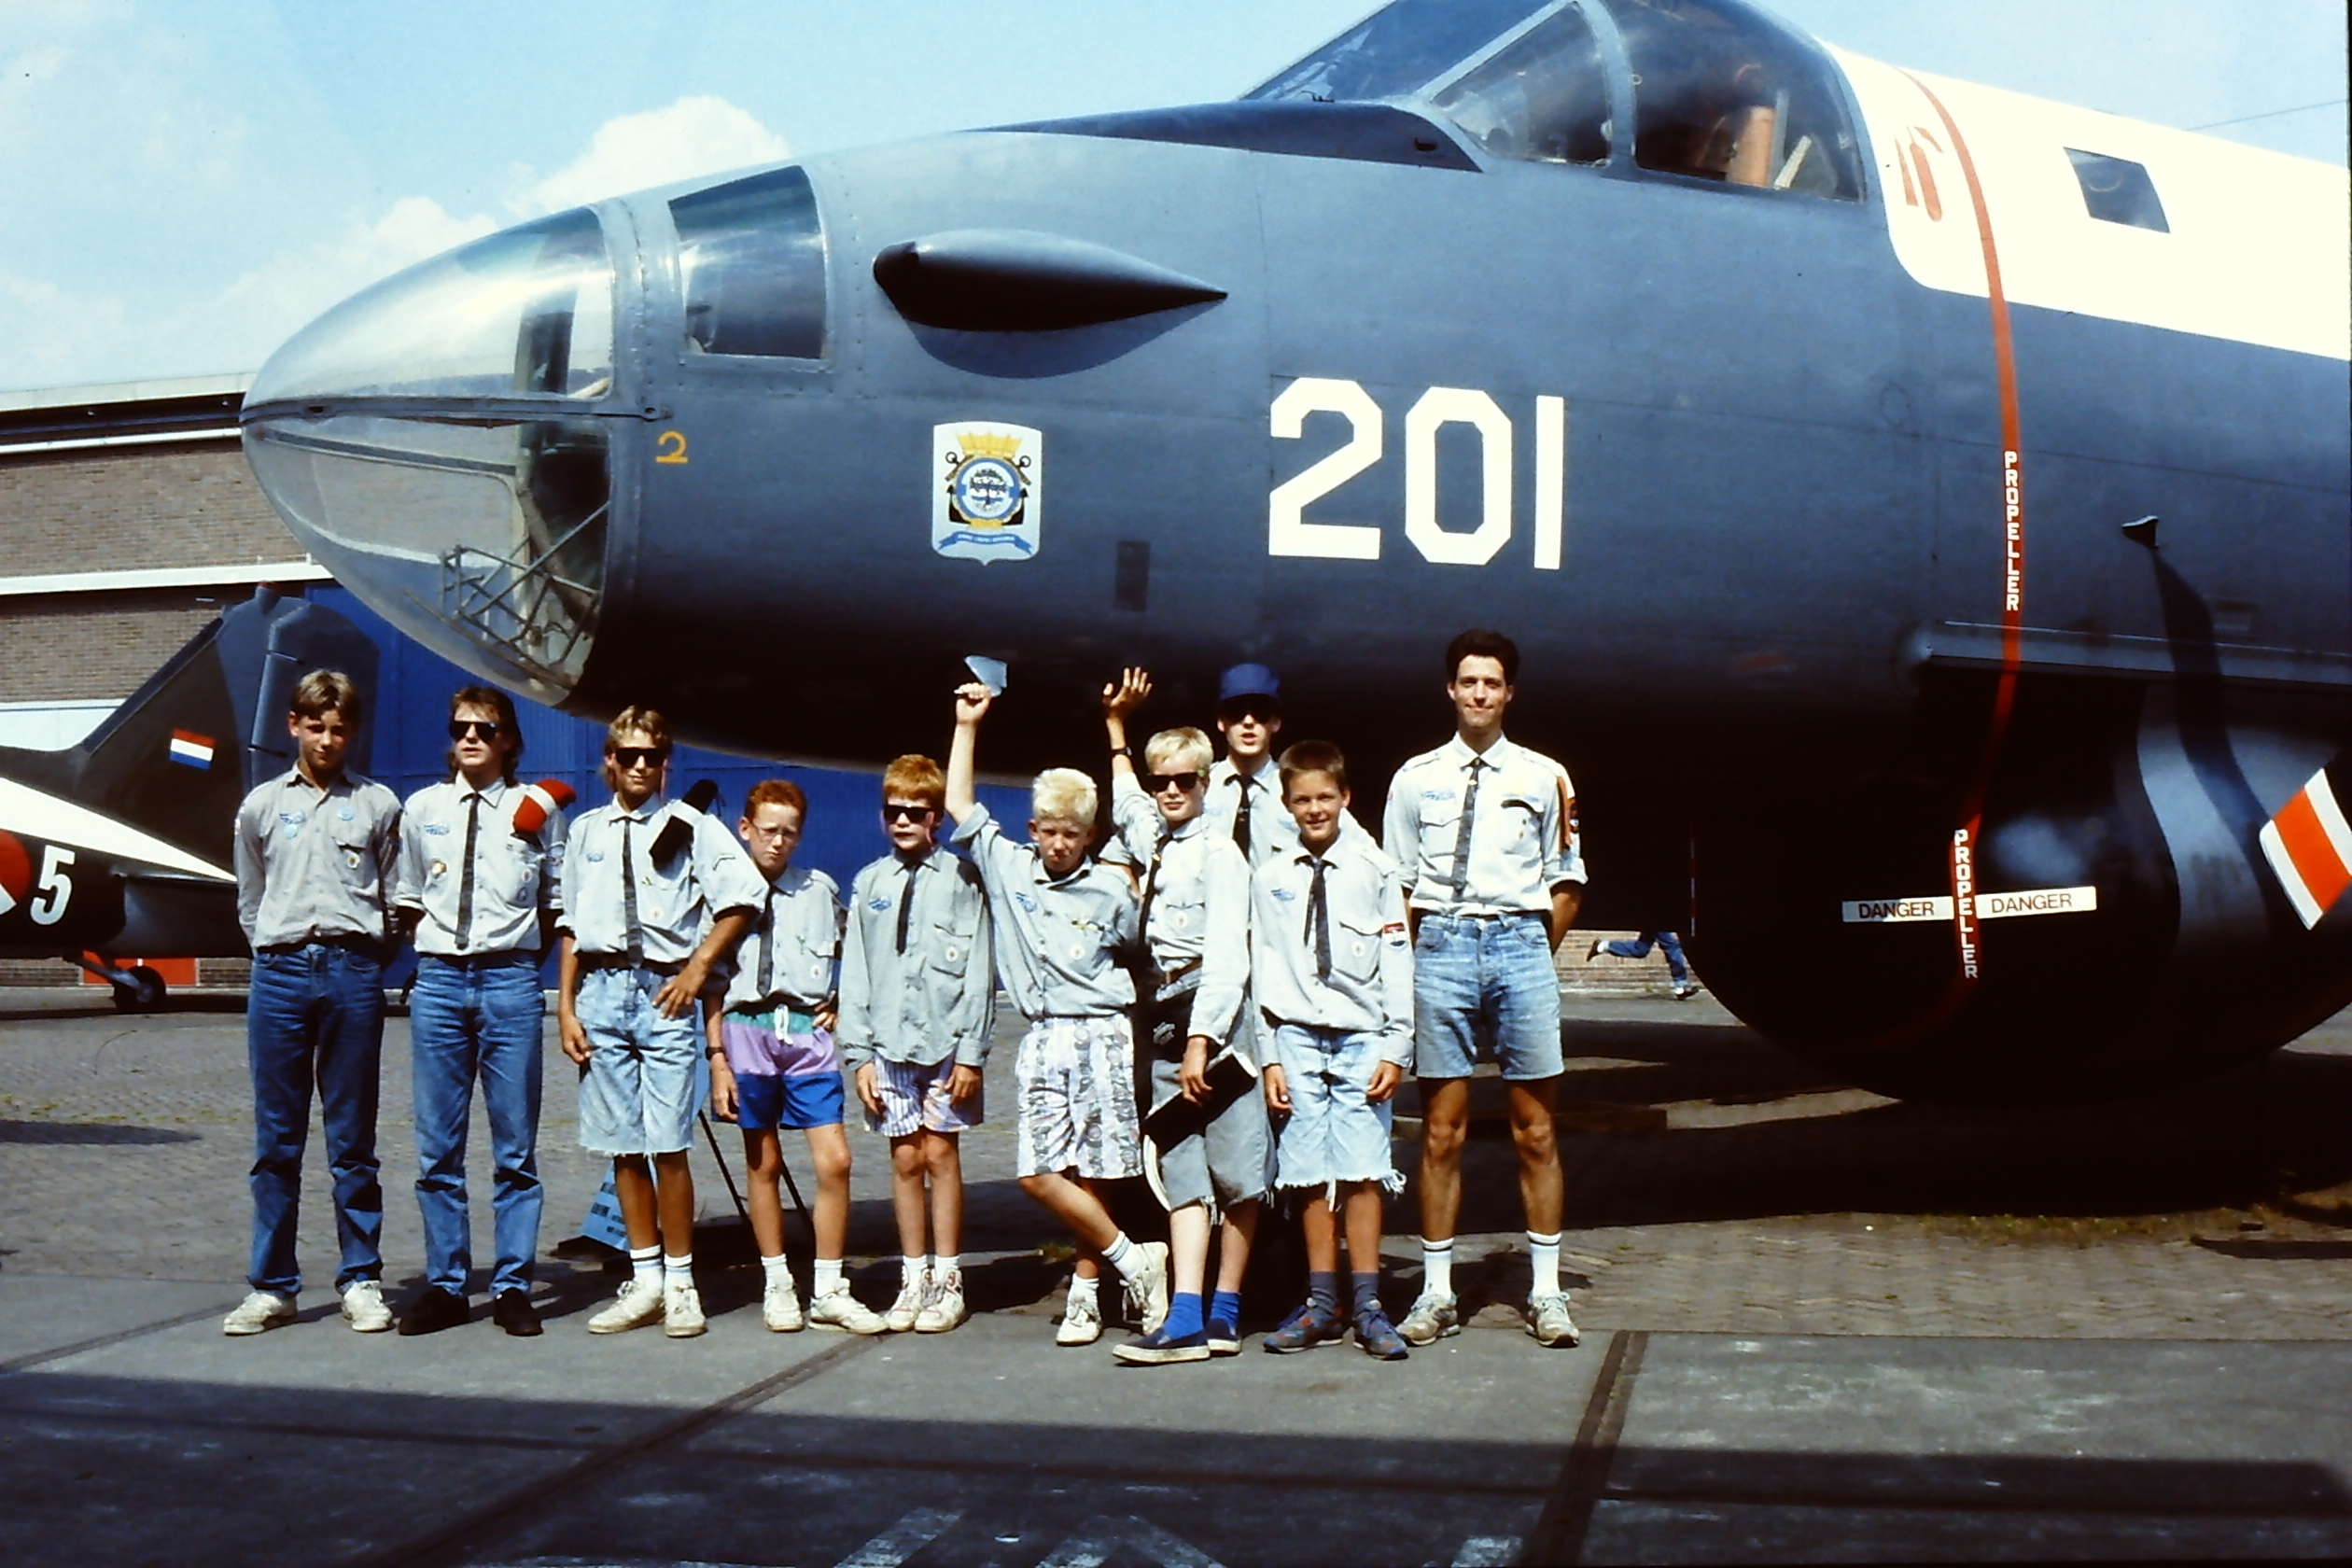 1991 Luchtscouts Kamp Hilversum